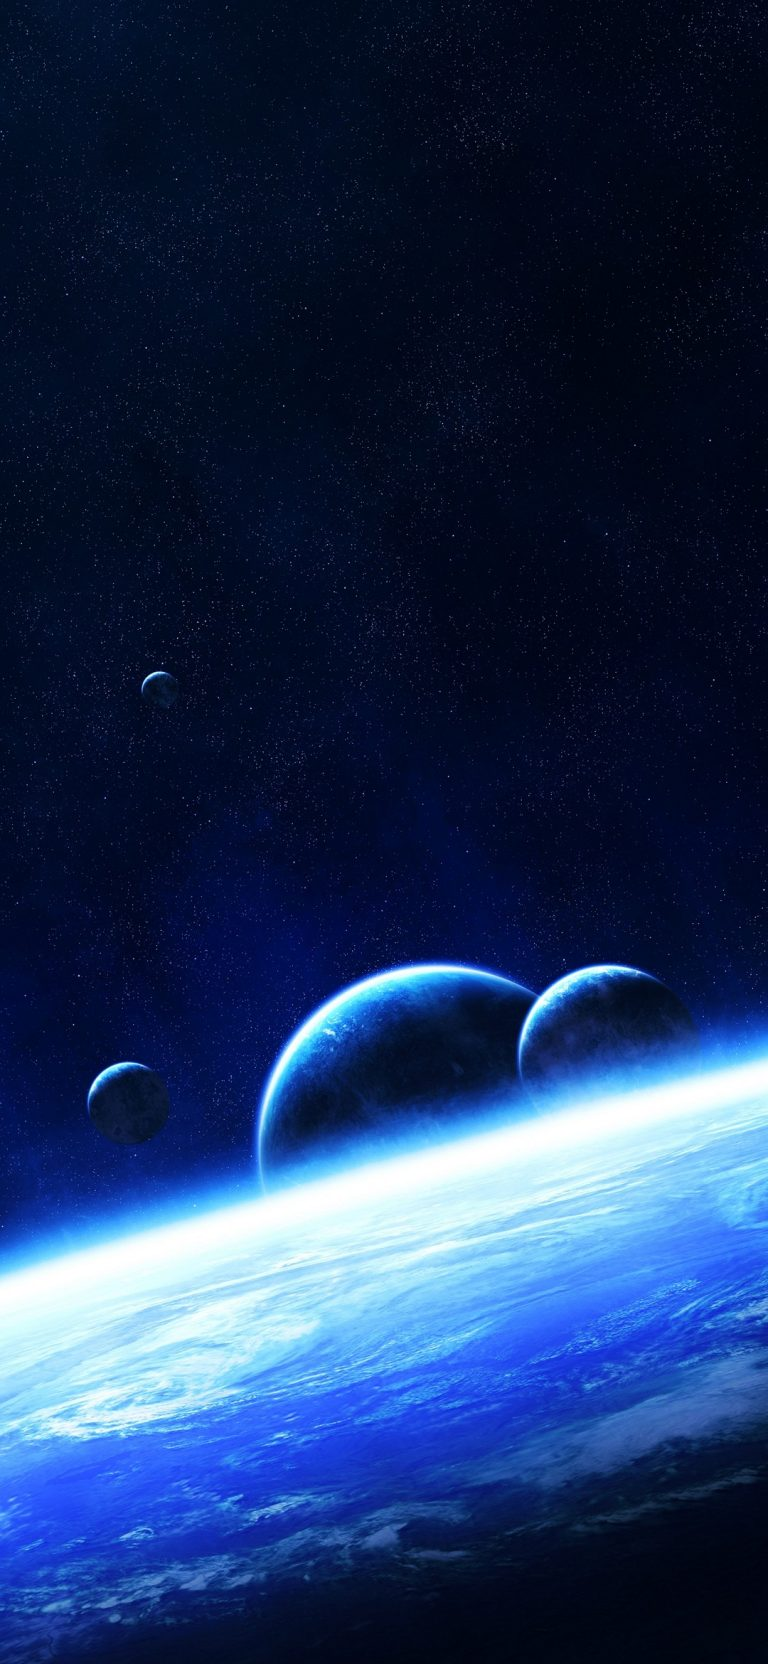 Space Phone Wallpaper 165 1080x2340 768x1664